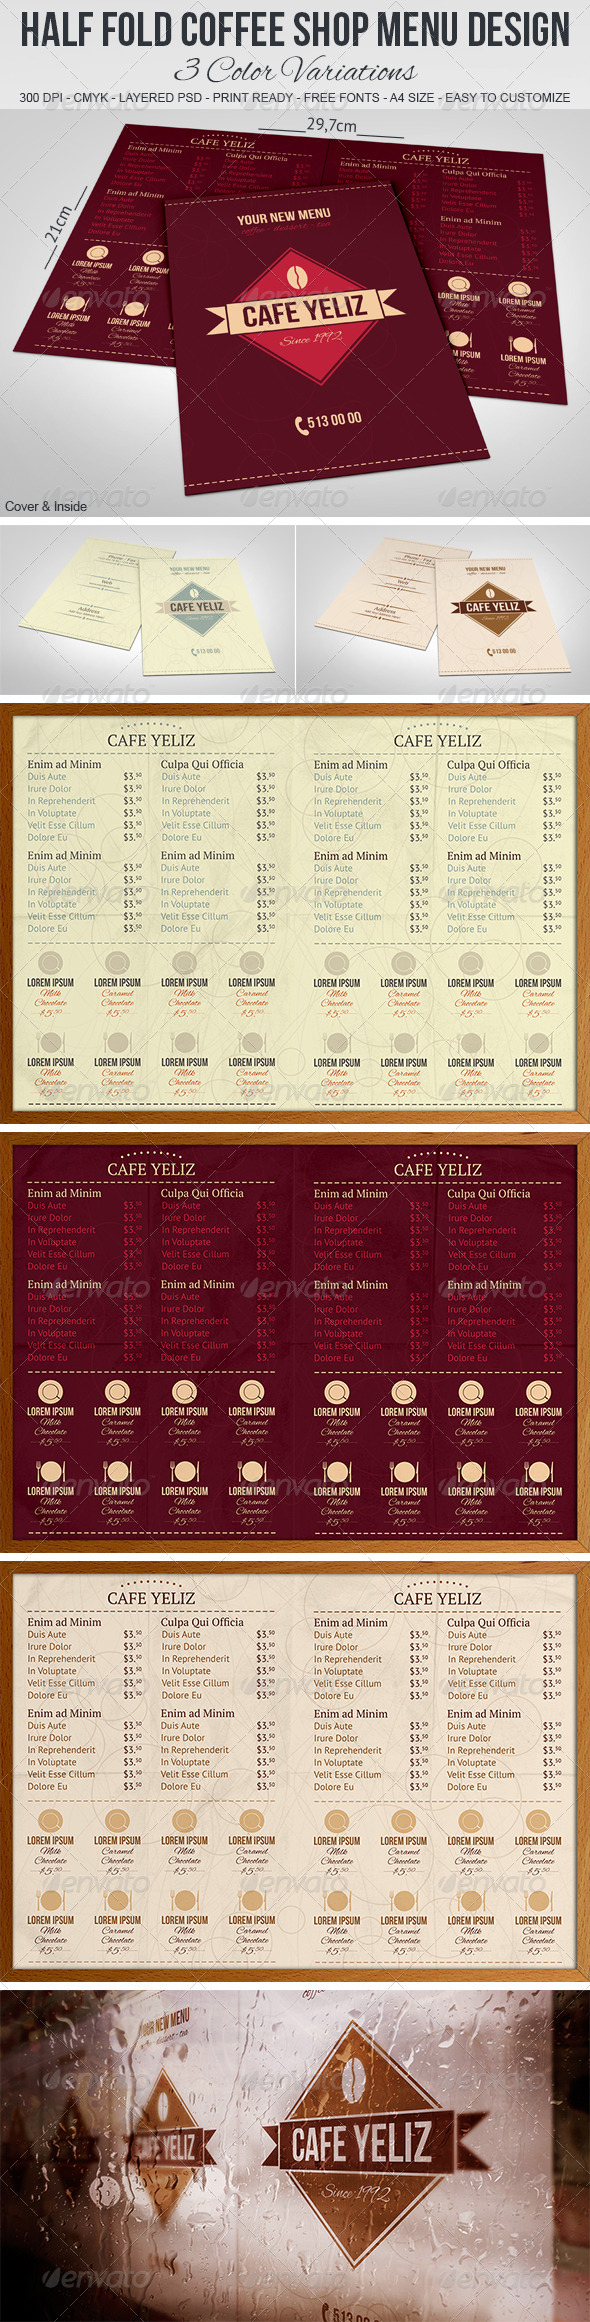 GraphicRiver Half Fold Coffee Shop Menu Design 5032769